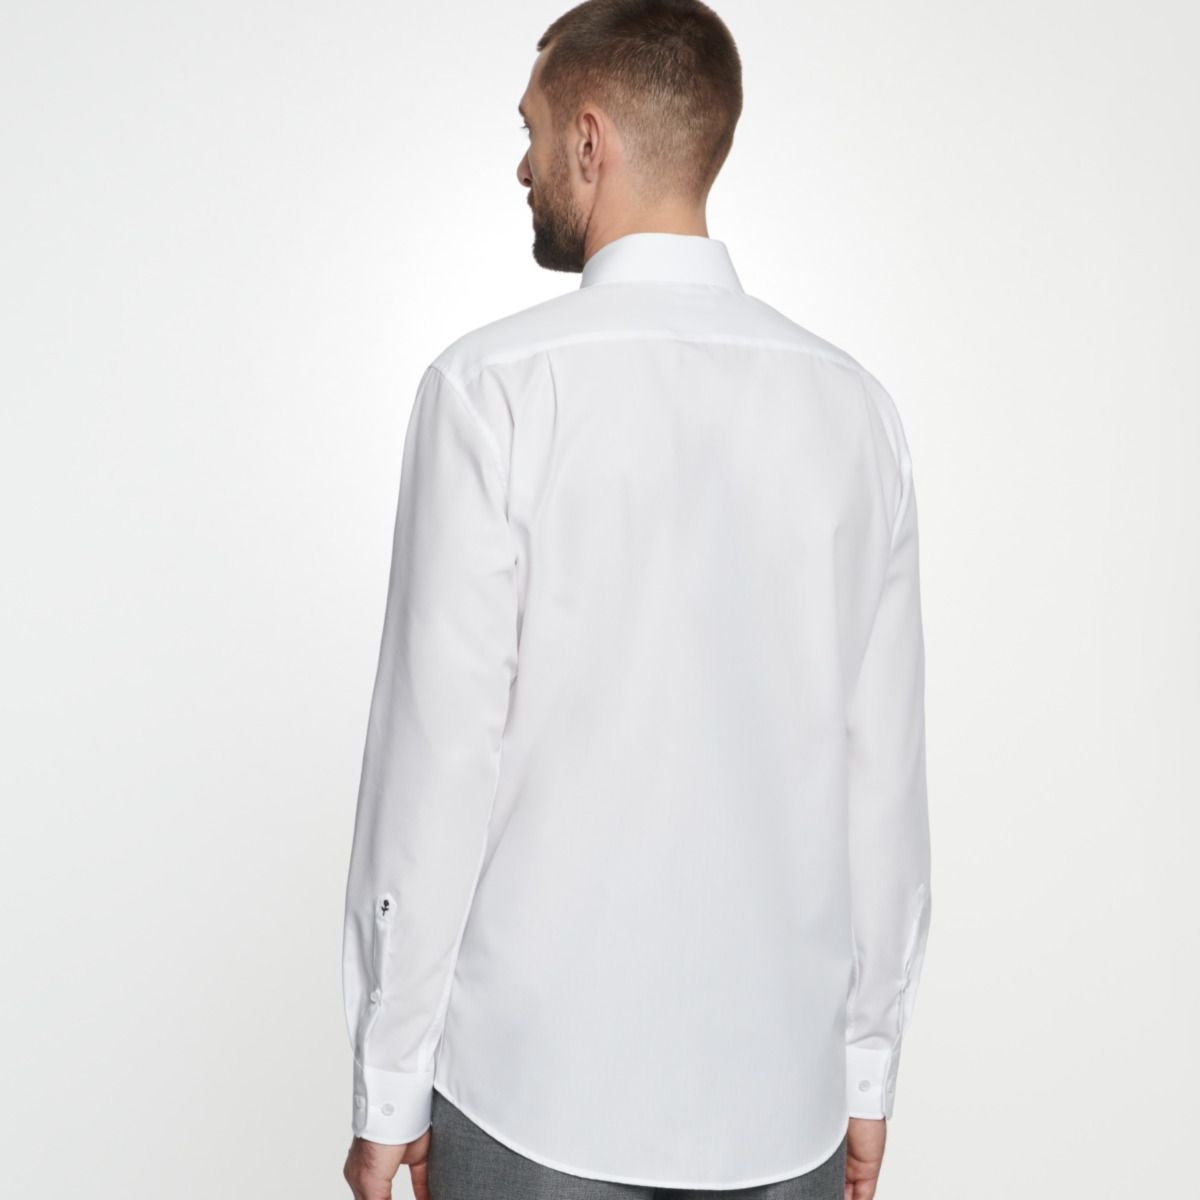 Chemise confort blanche col ville